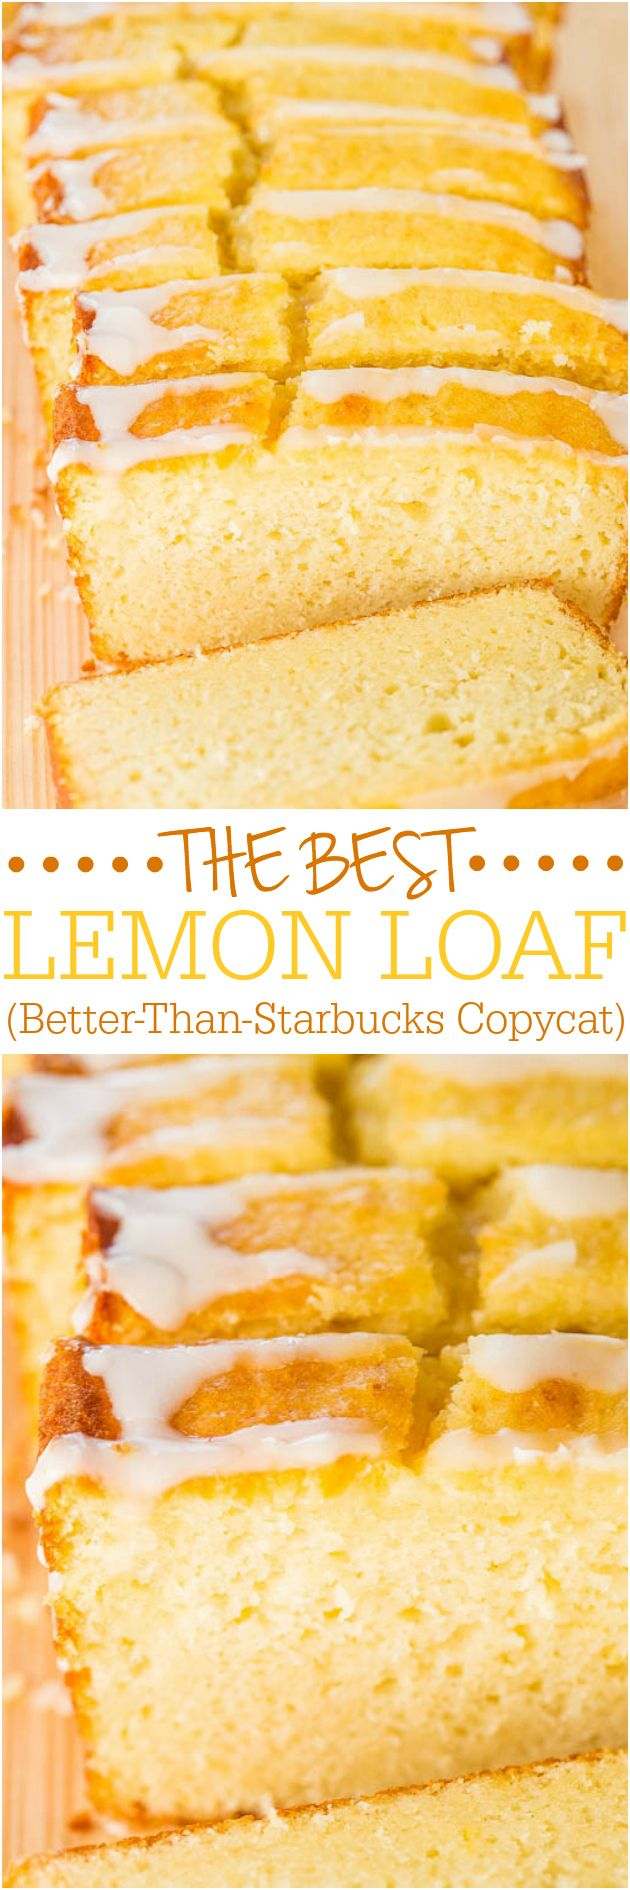 Slow Cooker: The Best Lemon Loaf (Better-Than-Starbucks Copycat...